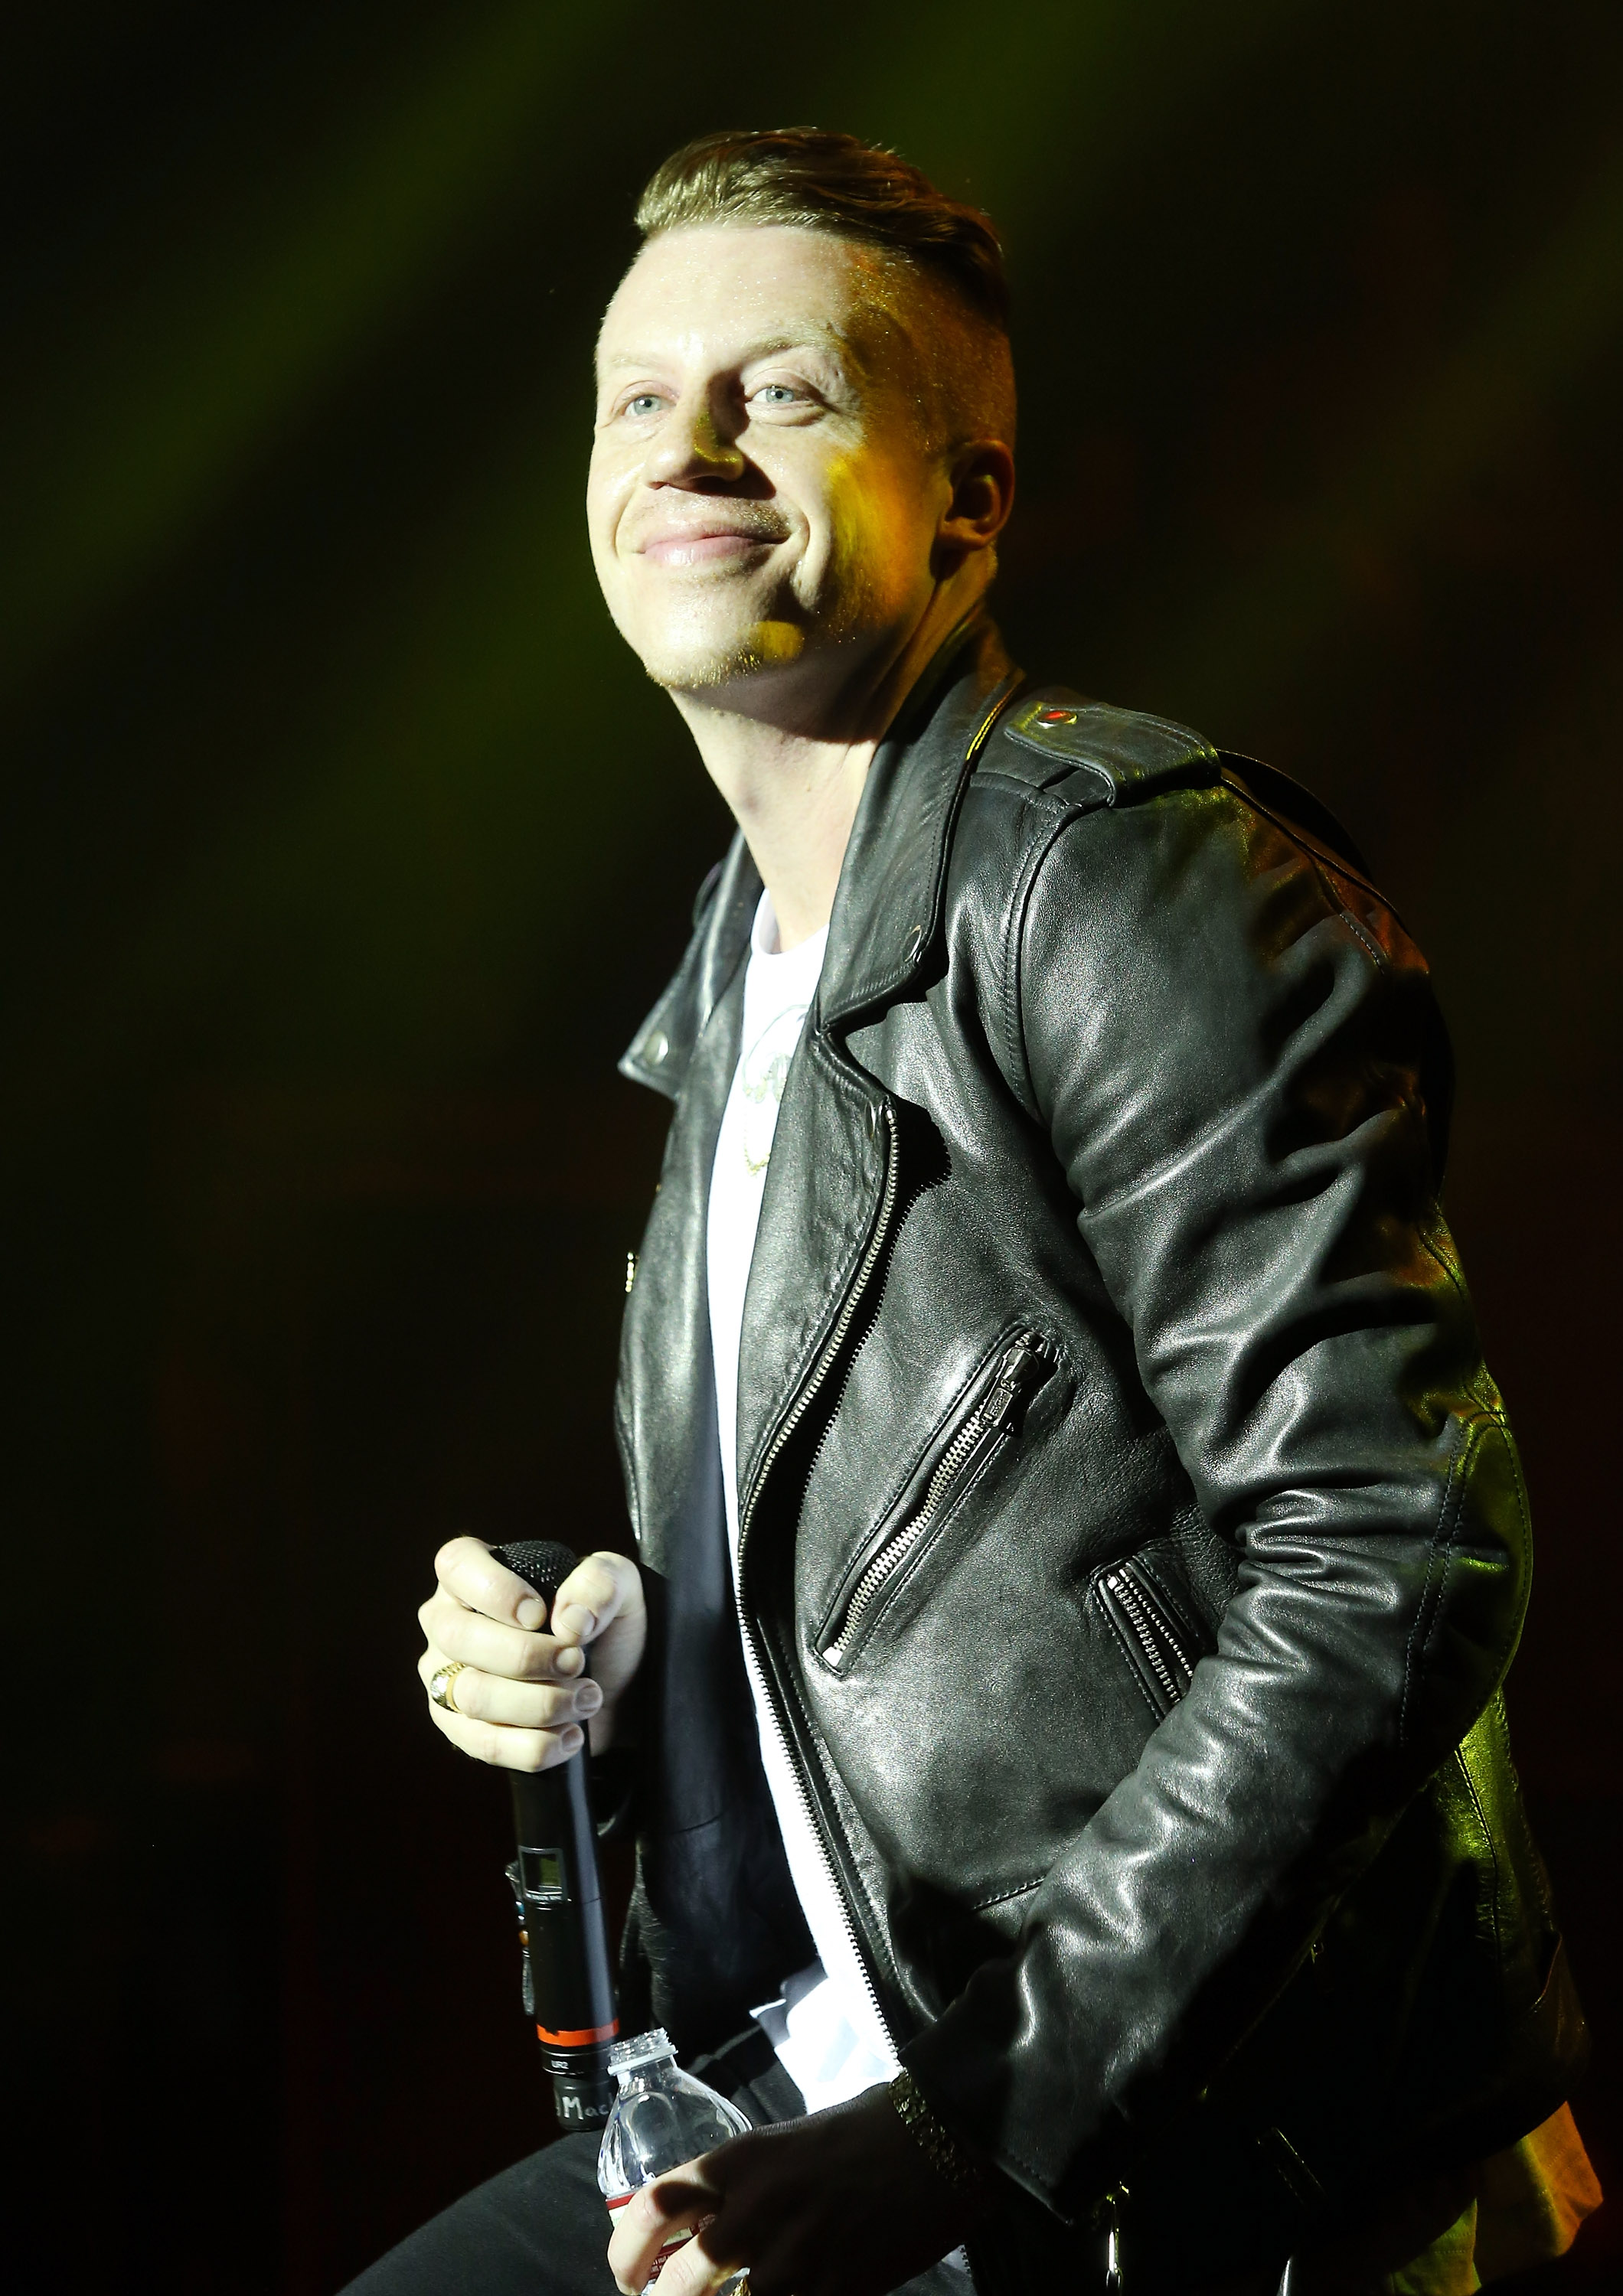 Macklemore-aka-Ben-Haggerty-performs-onstage-hosted-by-T-Mobile-held-at-Belasco-Theatre-on-January-23-2014-in-Los-Angeles